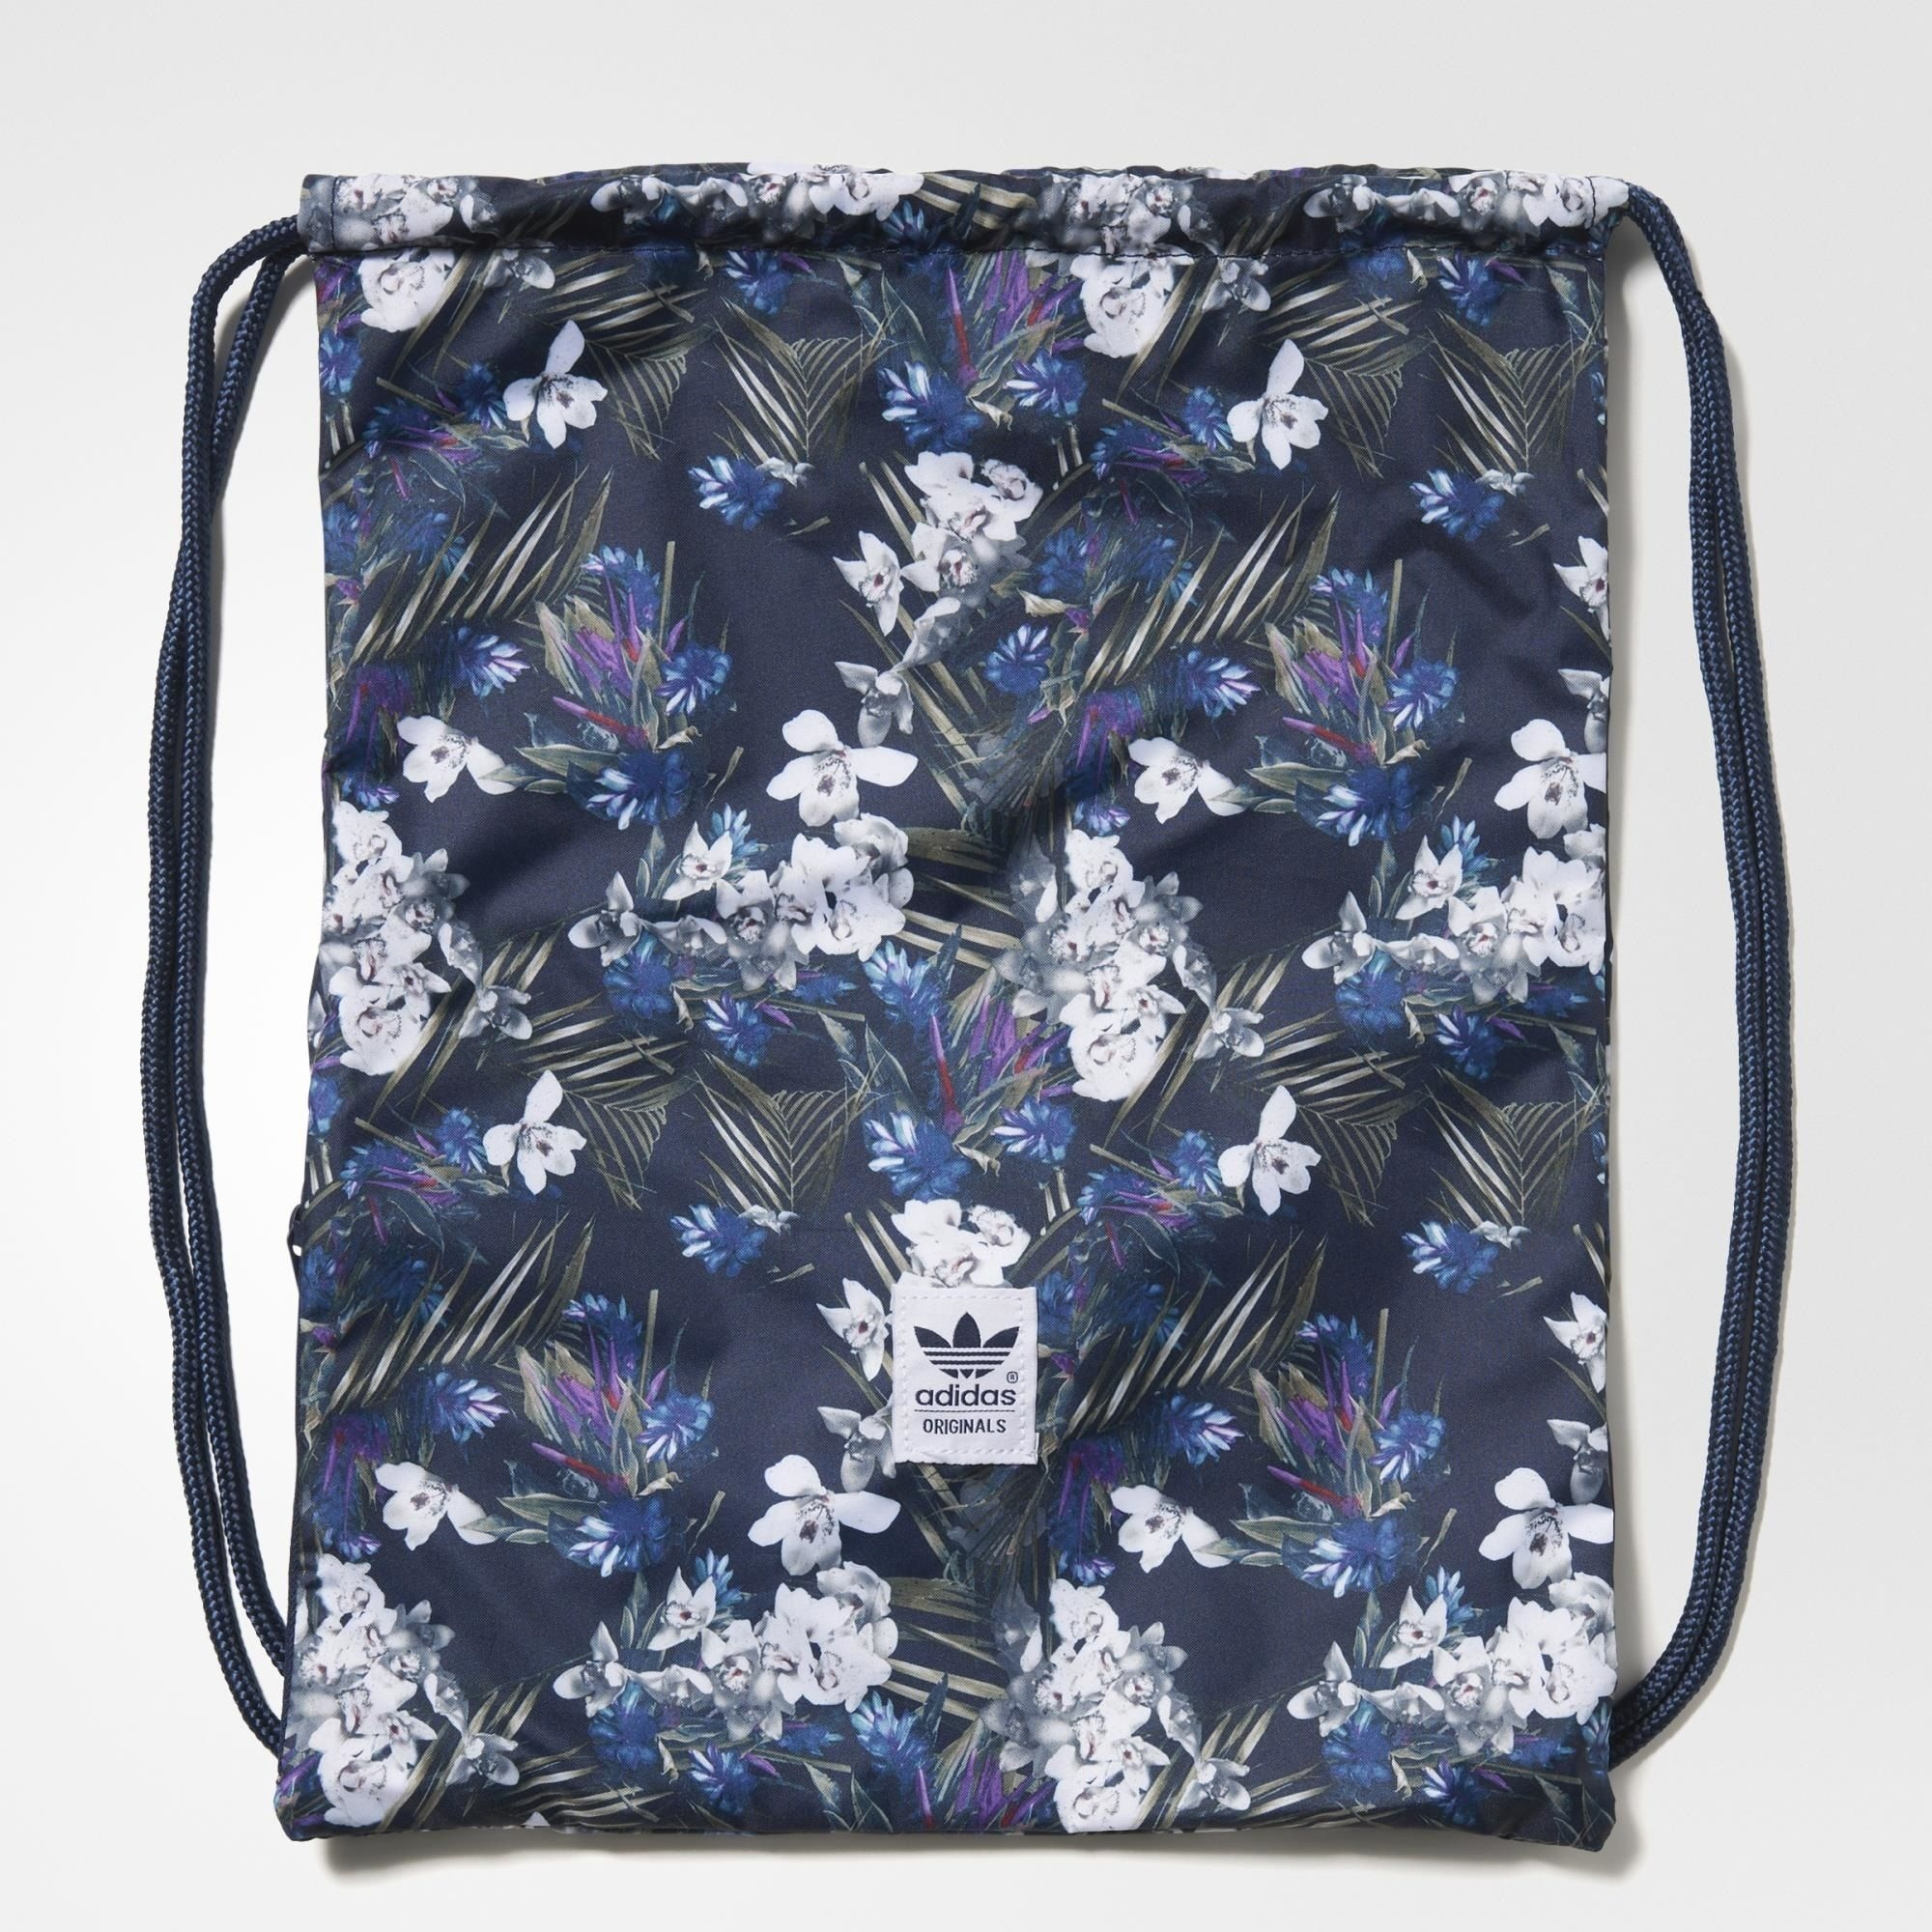 Details about adidas Originals Dark Floral Gymsack Fitness Shopping  Drawstring Bag   AB3871 9839e40df1